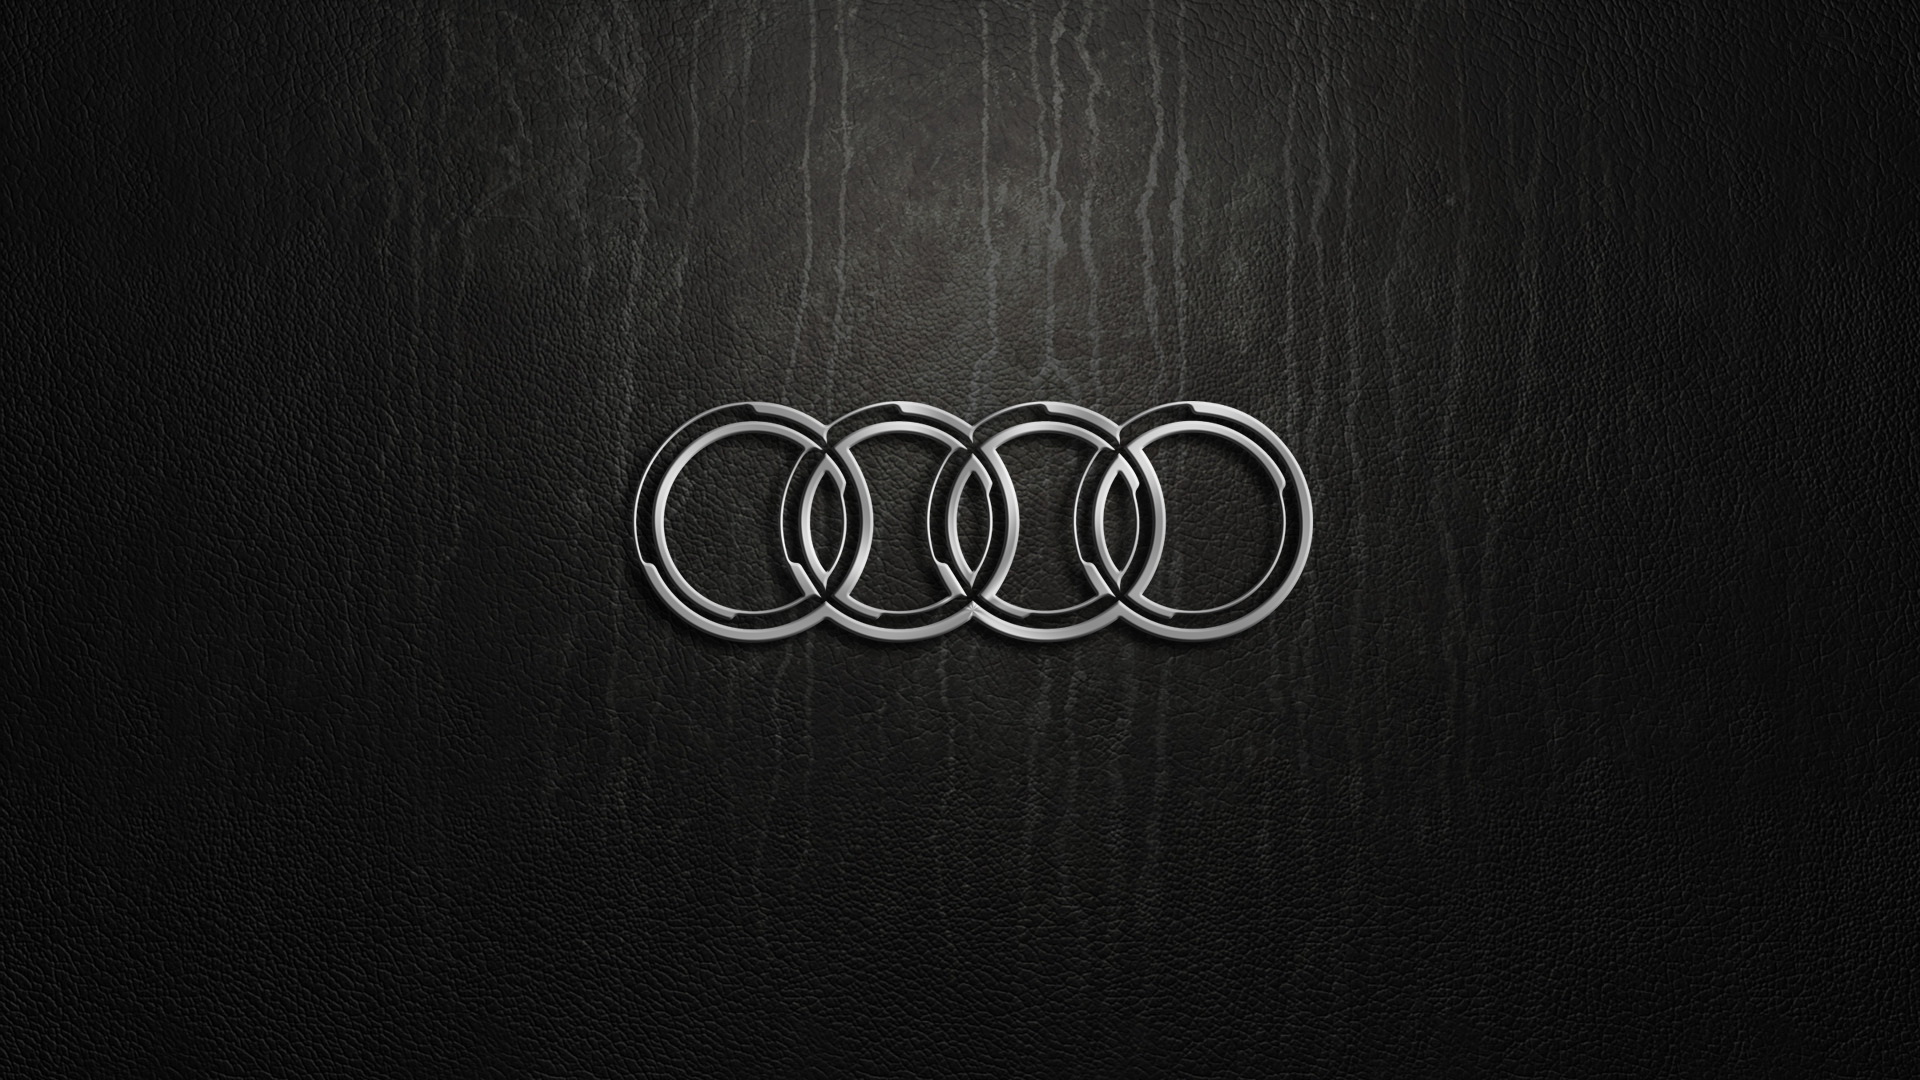 audi-logo-wallpaper-548.jpg